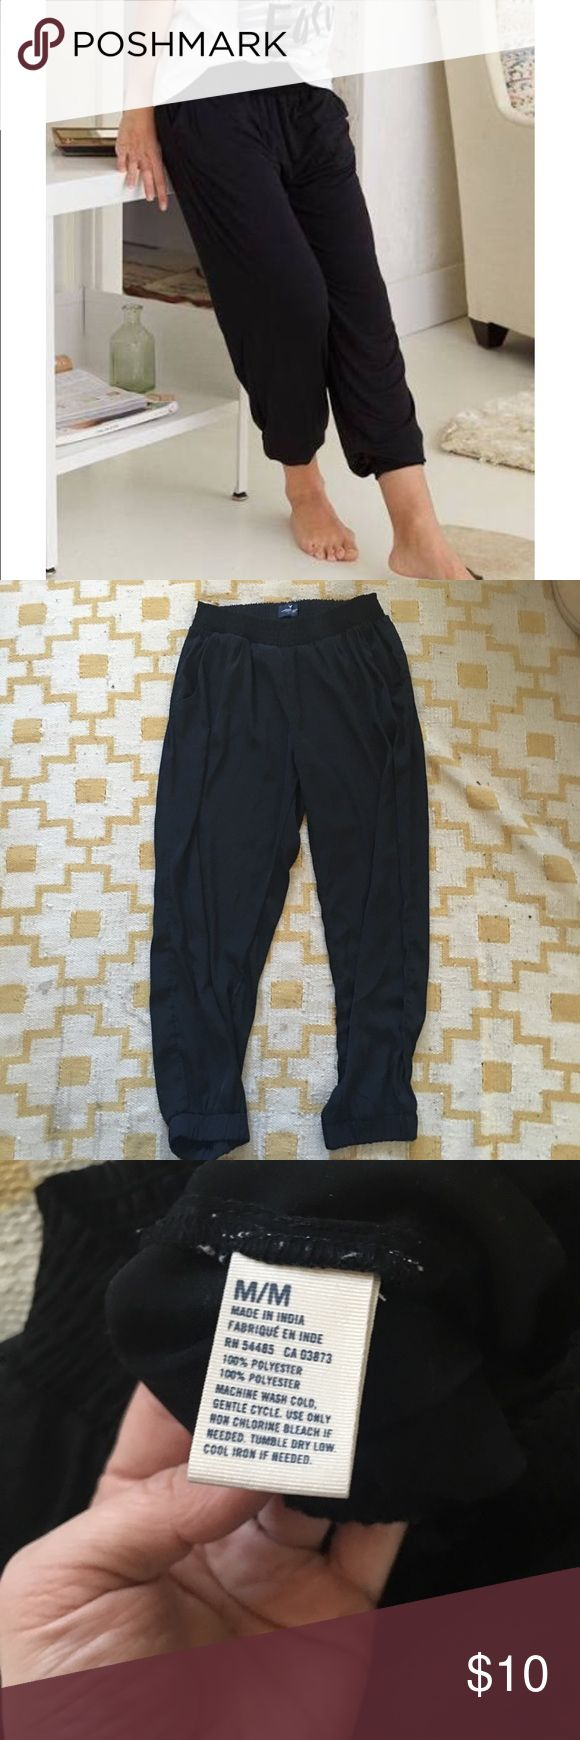 American eagle lightweight harem pants Lightweight material. Elasticated waist. Like new American Eagle Outfitters Pants Trousers